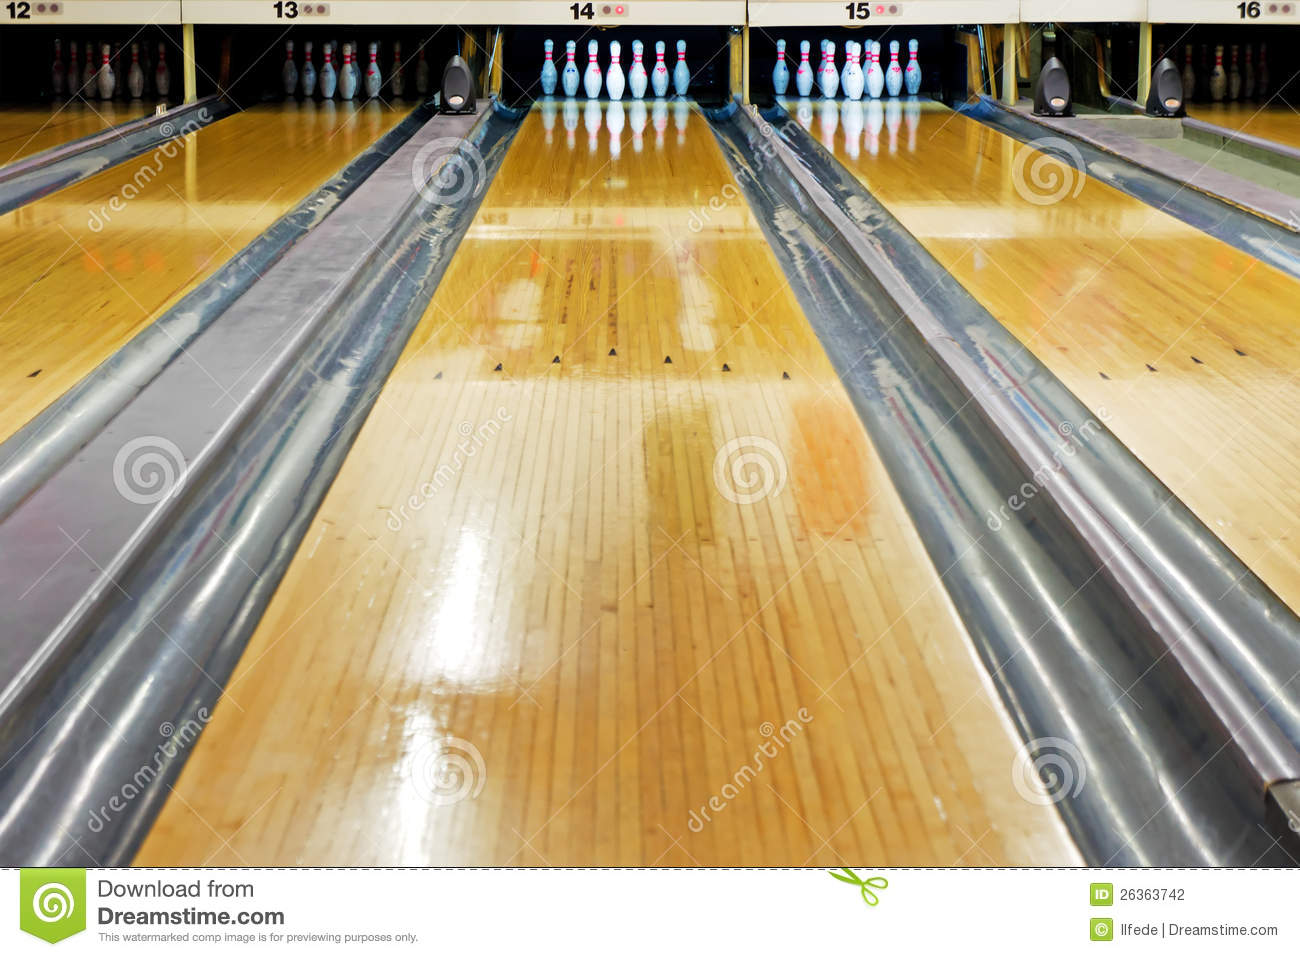 Bowling lane stock photo. Image of activity, compete.